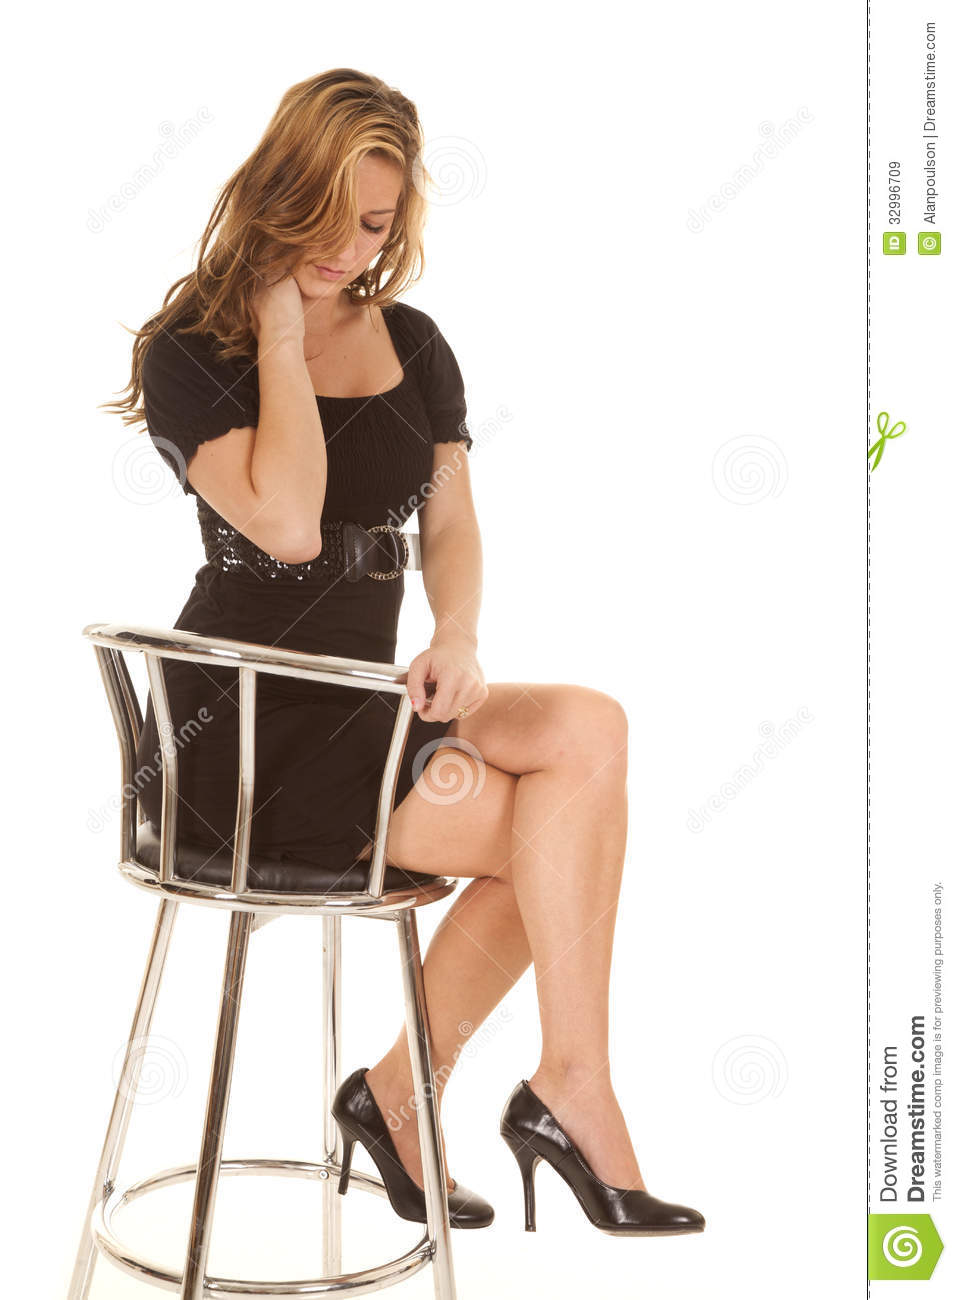 Woman In Black Dress Sitting On Chair Royalty Free Stock